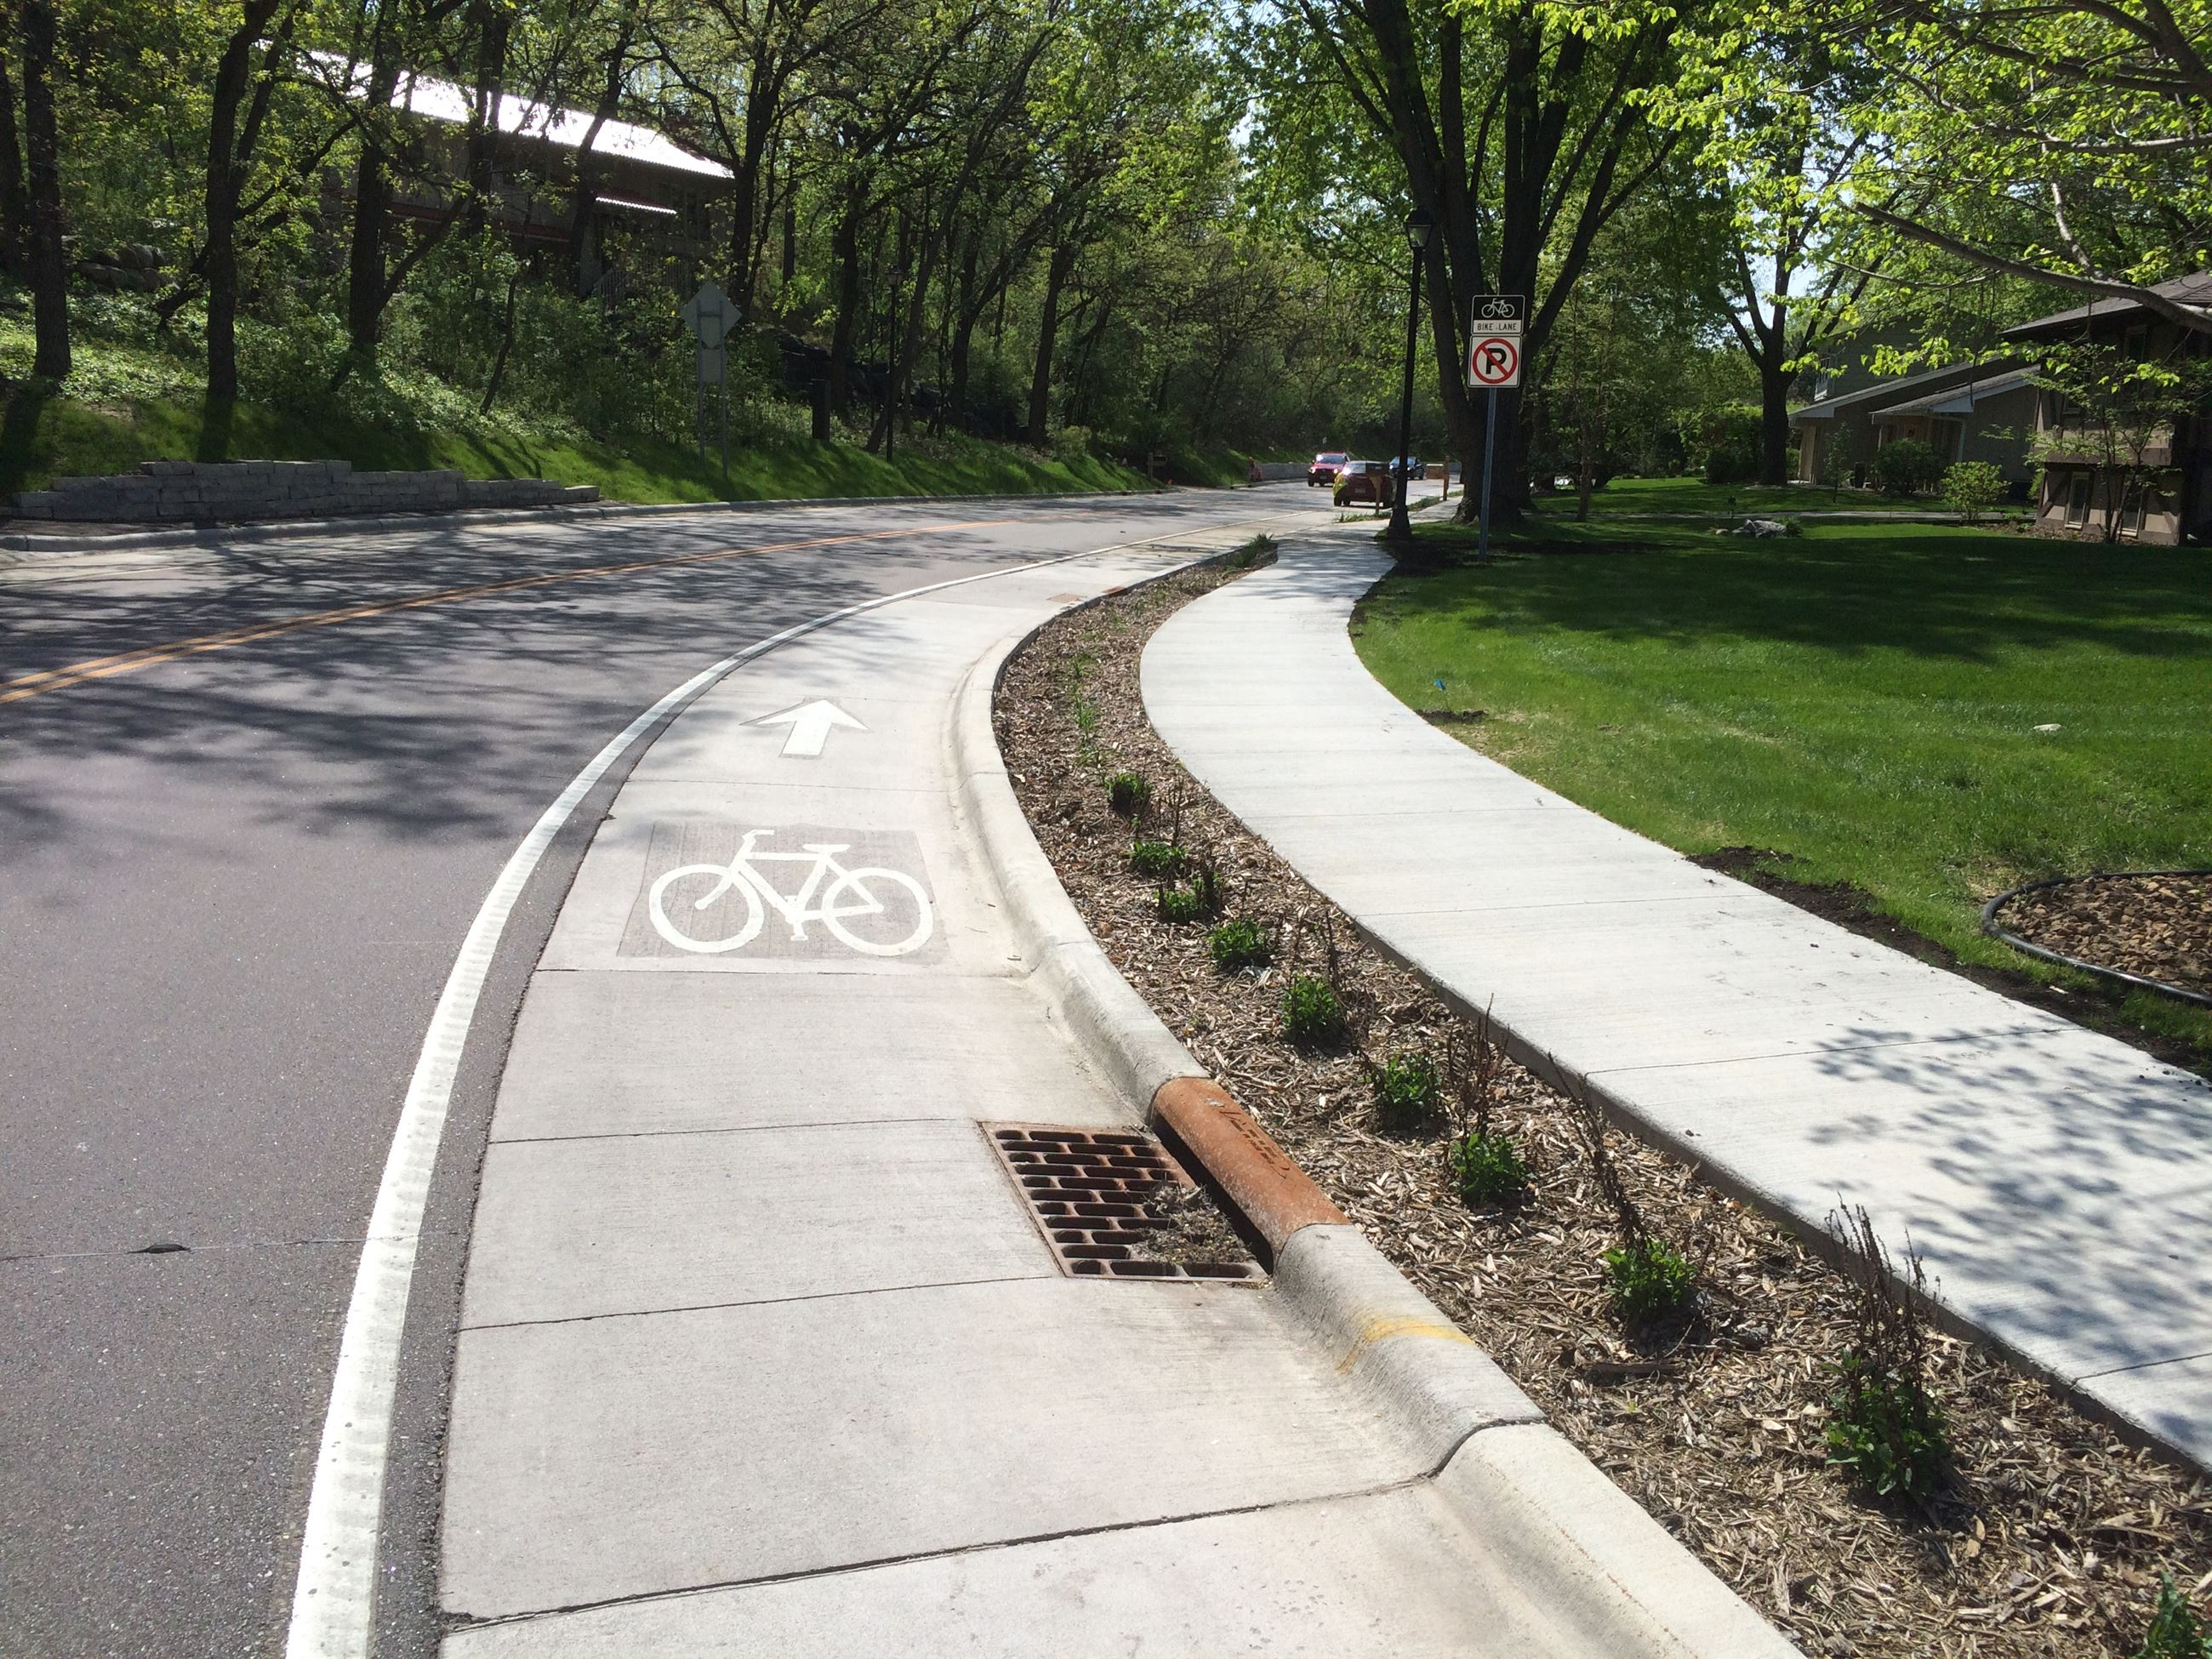 roadway with bike lanes and concrete sidewalk